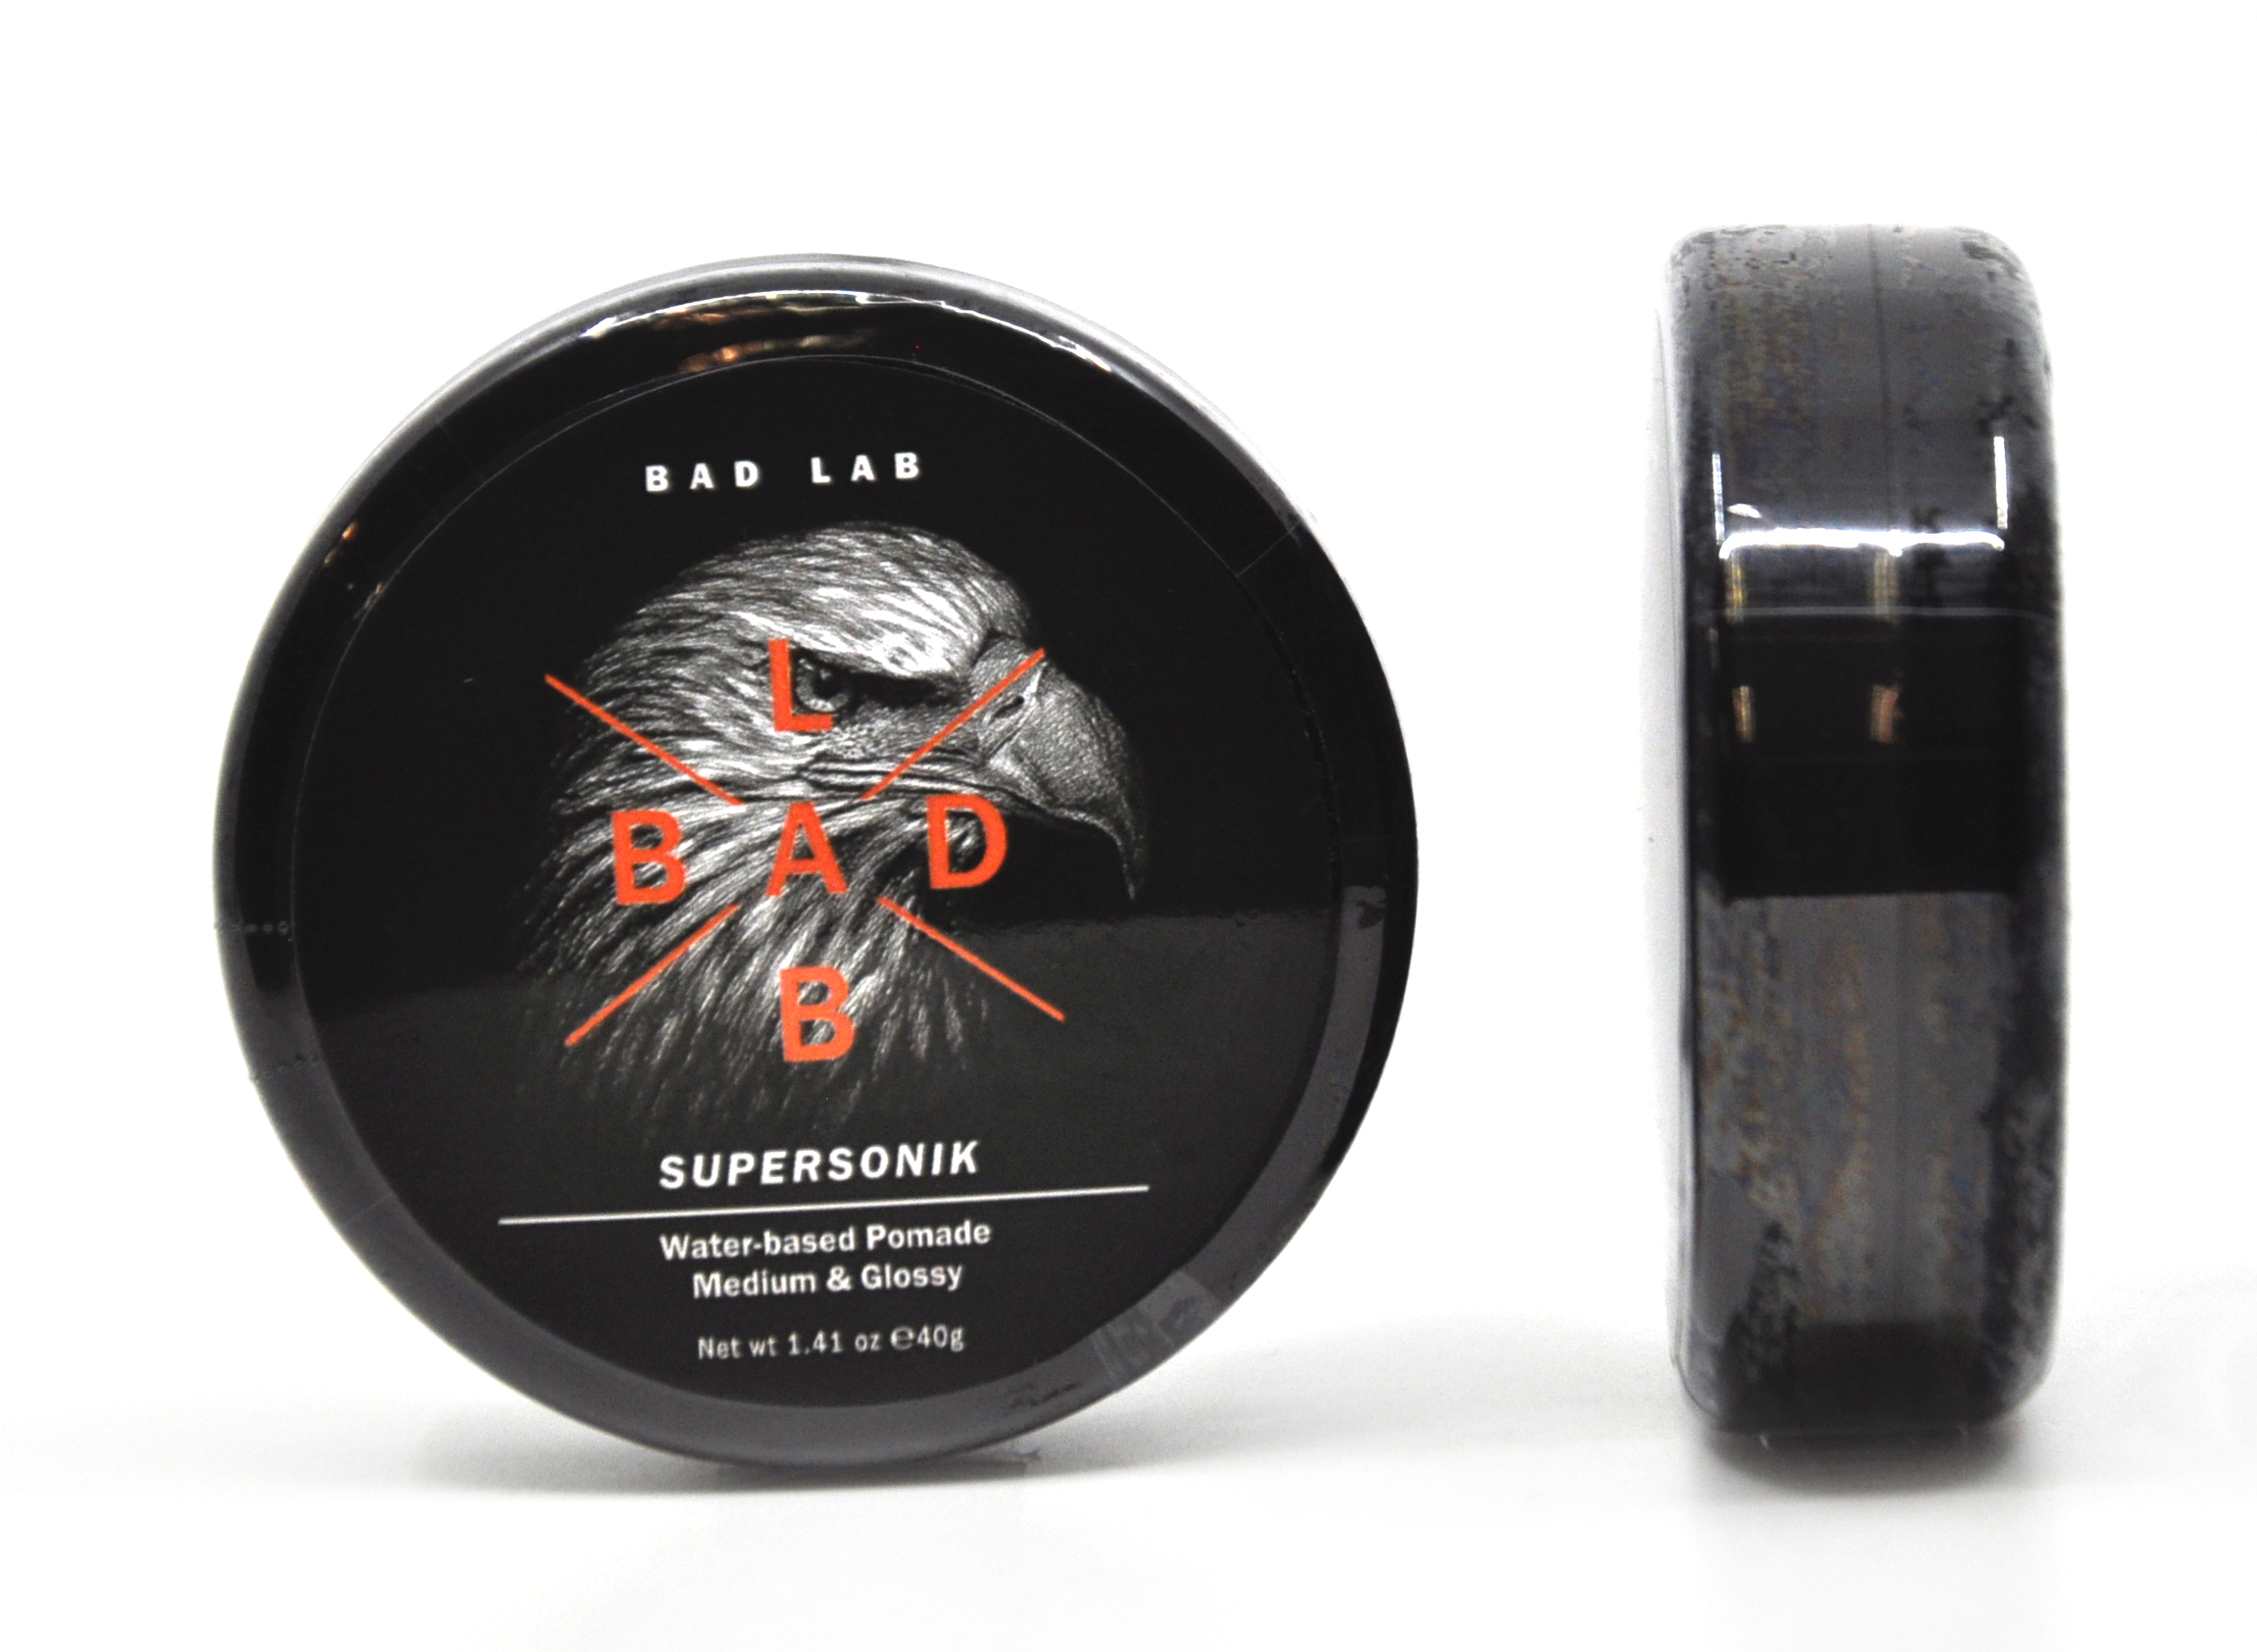 Supersonik Water-Based Pomade by Bad Lab